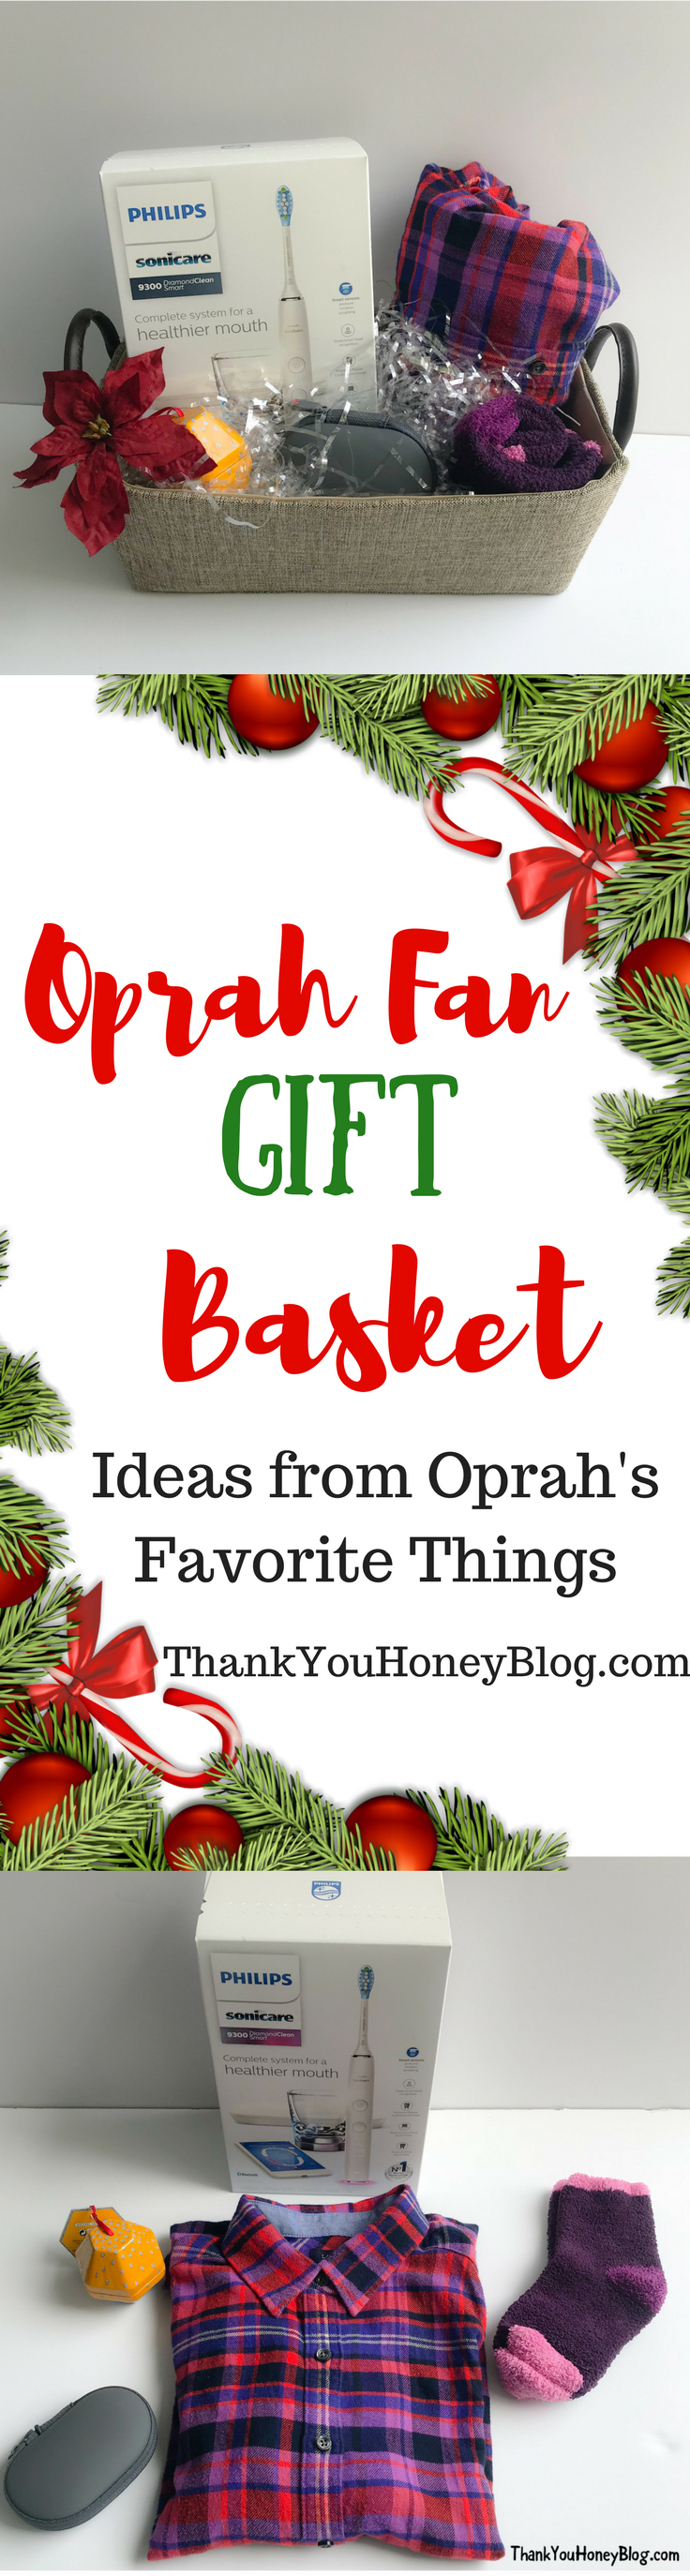 Oprah Fan Gift Basket #WorldsSmartestToothbrush #PhilipsSonicare #OprahsFavoriteThings #ad